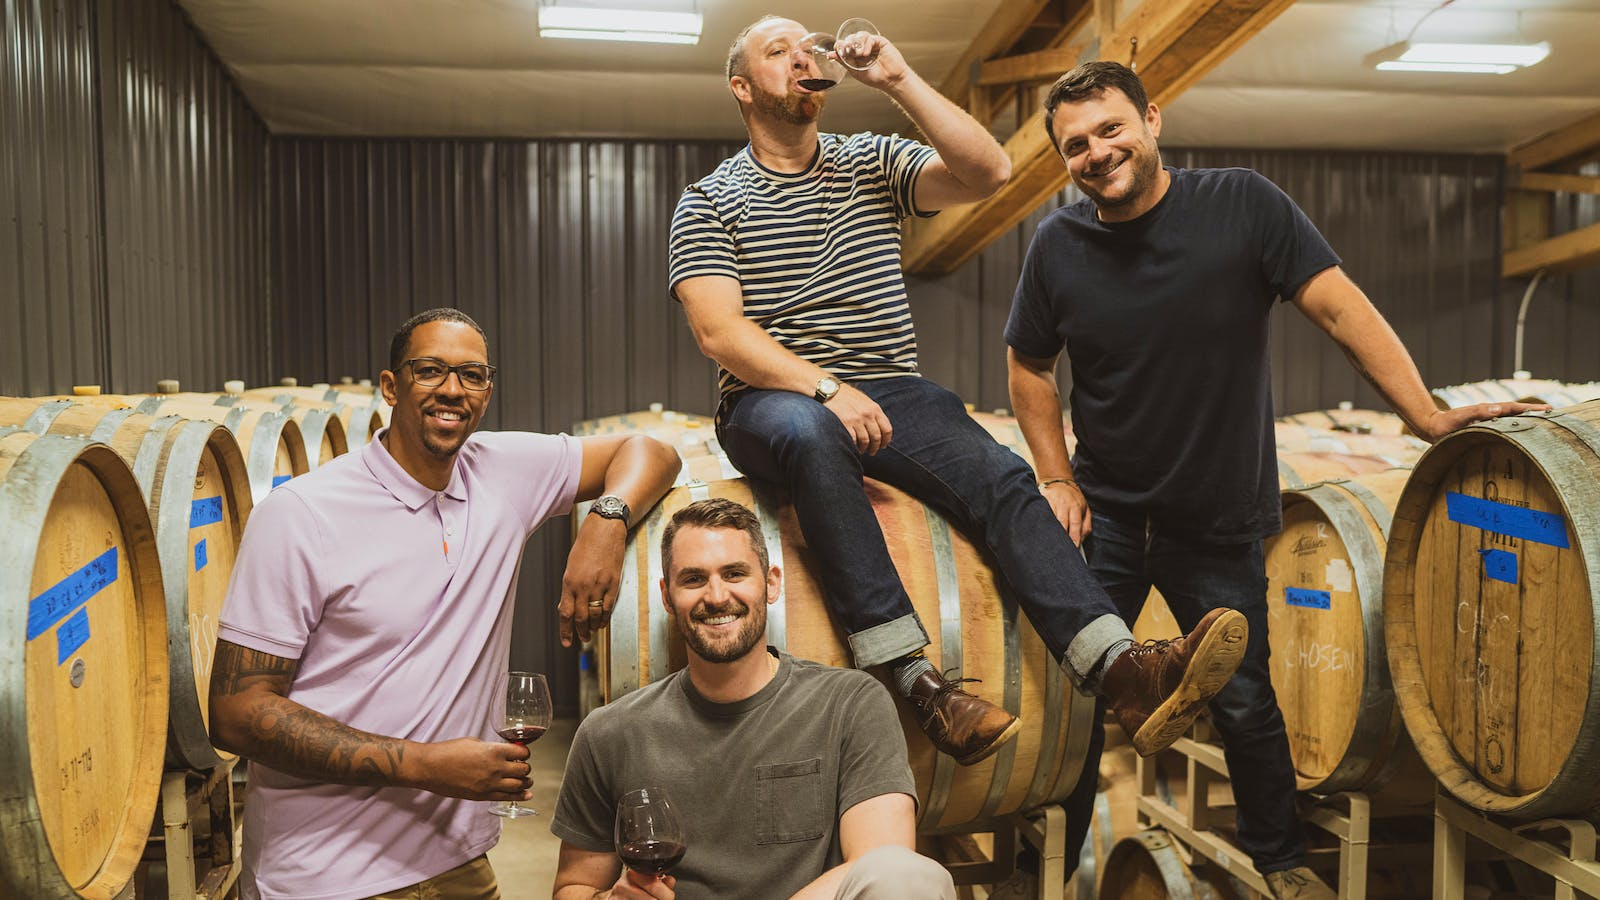 NBA Champ Kevin Love Joins Channing Frye's Wine Team